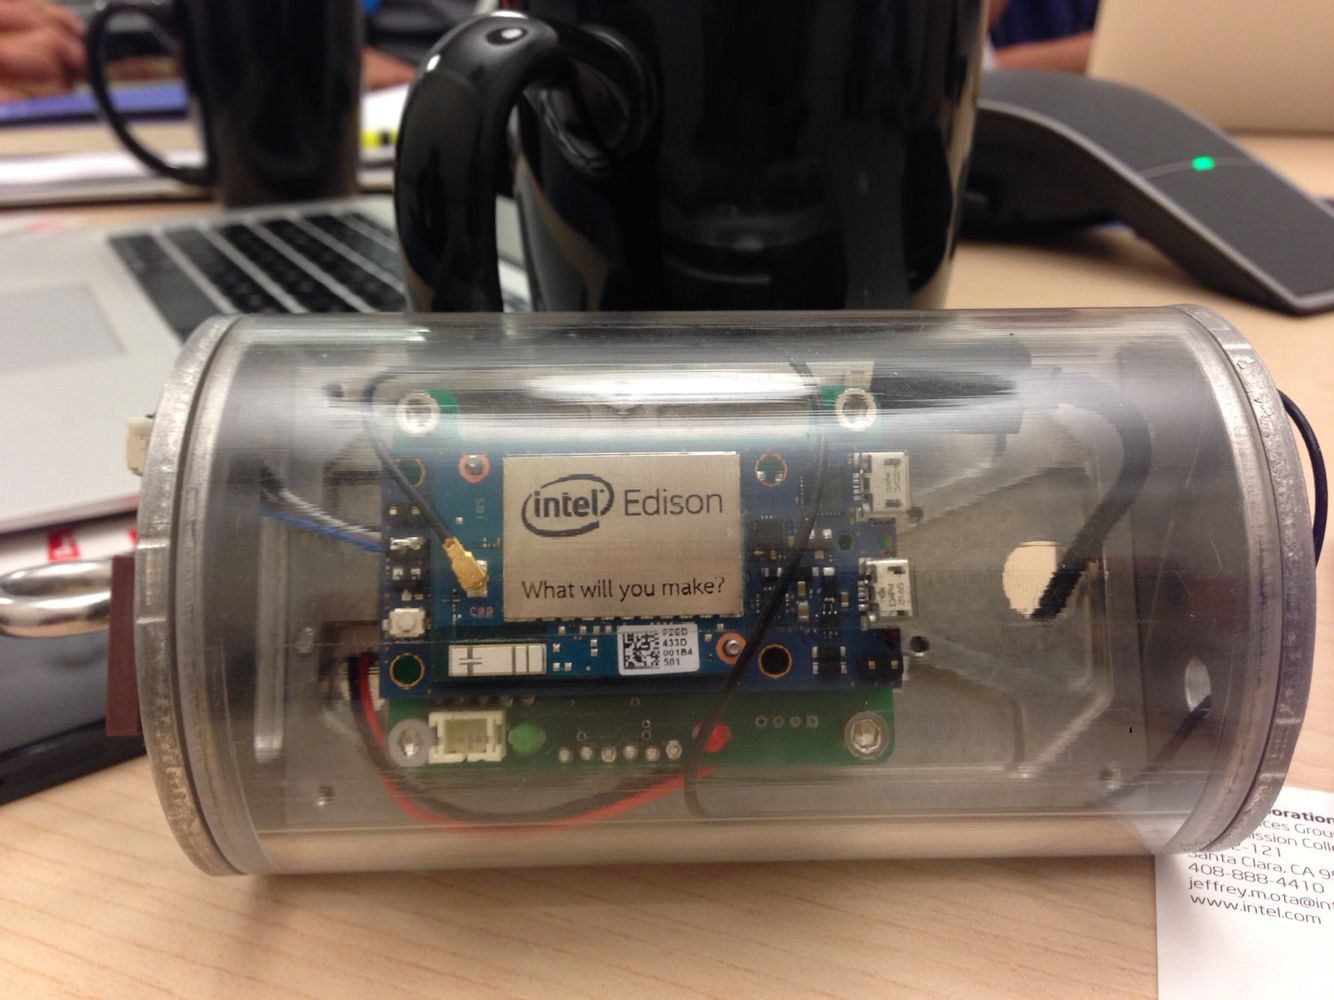 Intel Edison Cansat Pinterest List Of Best Online Circuit Simulator Gadgetronicx Engineering Projects Computers